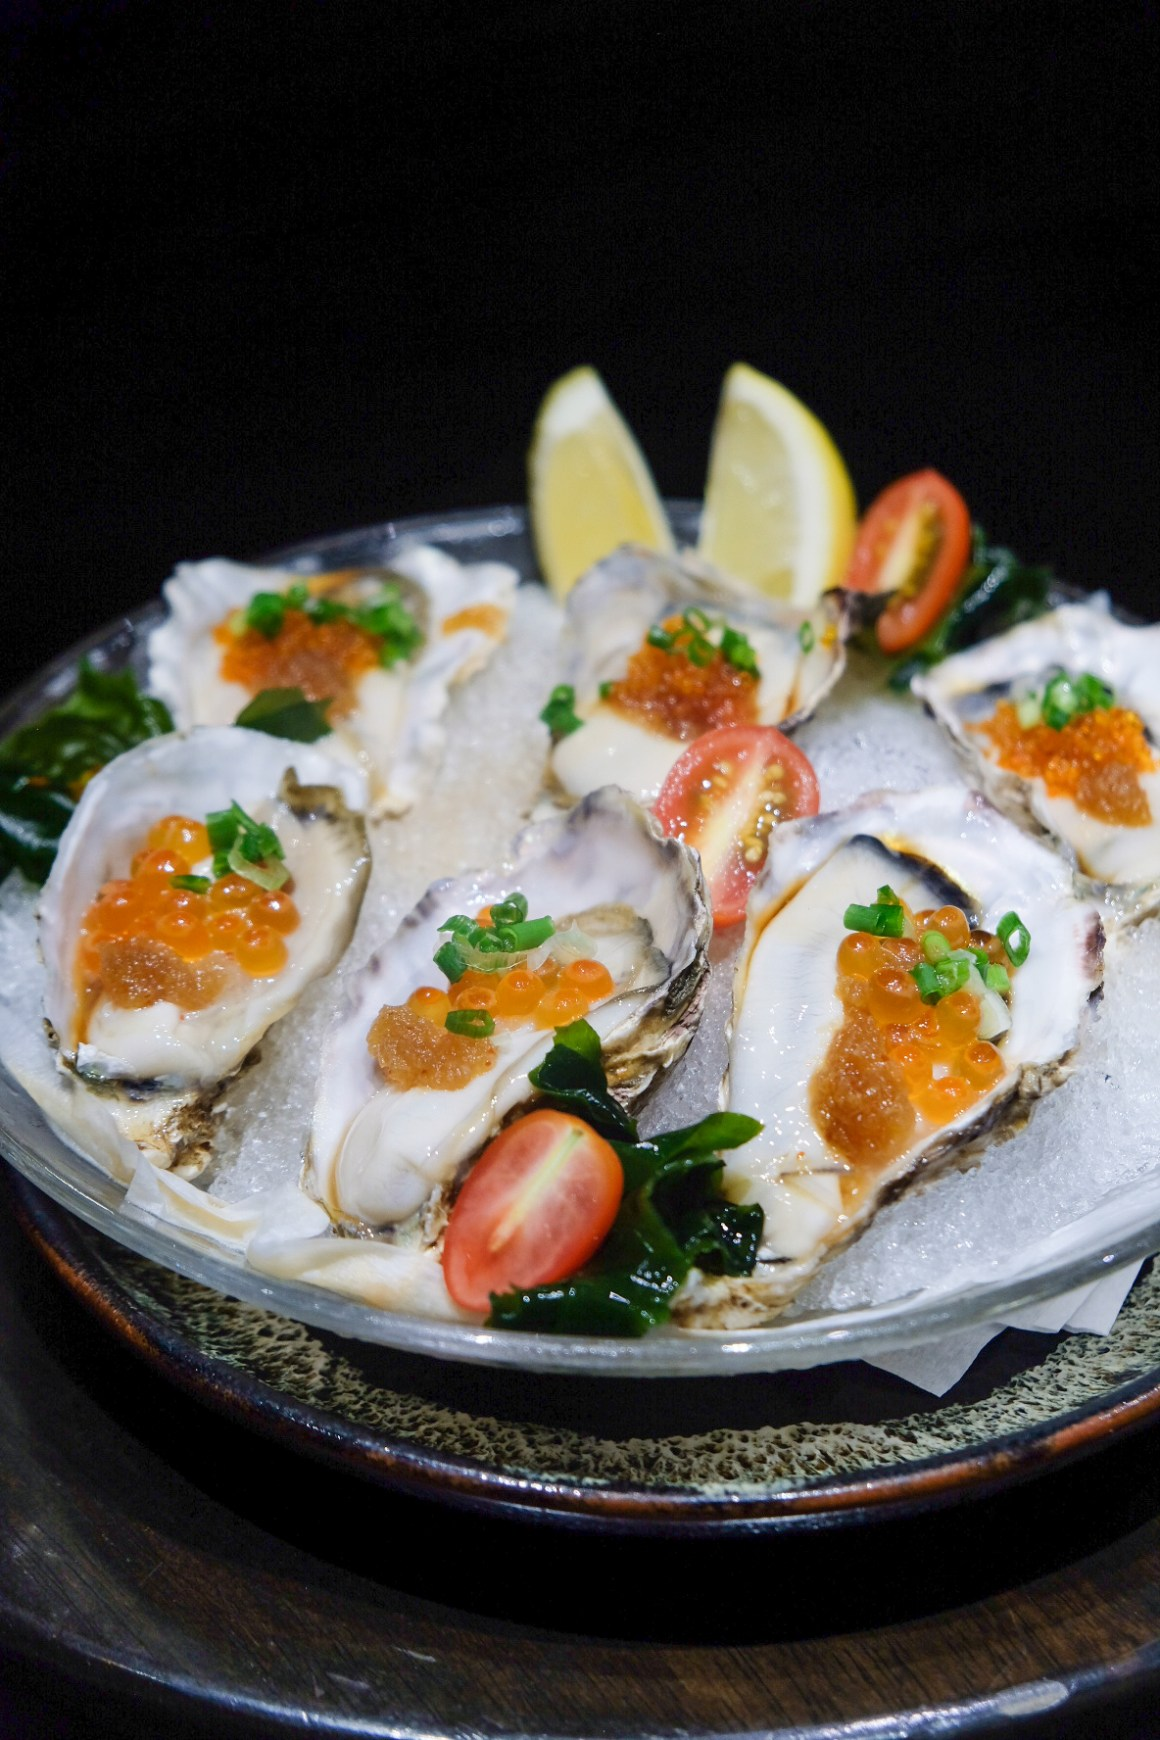 TEN Sushi At The Quayside - Japanese Fresh Oysters (6pcs-S$28++, 12pcs-S$49++)